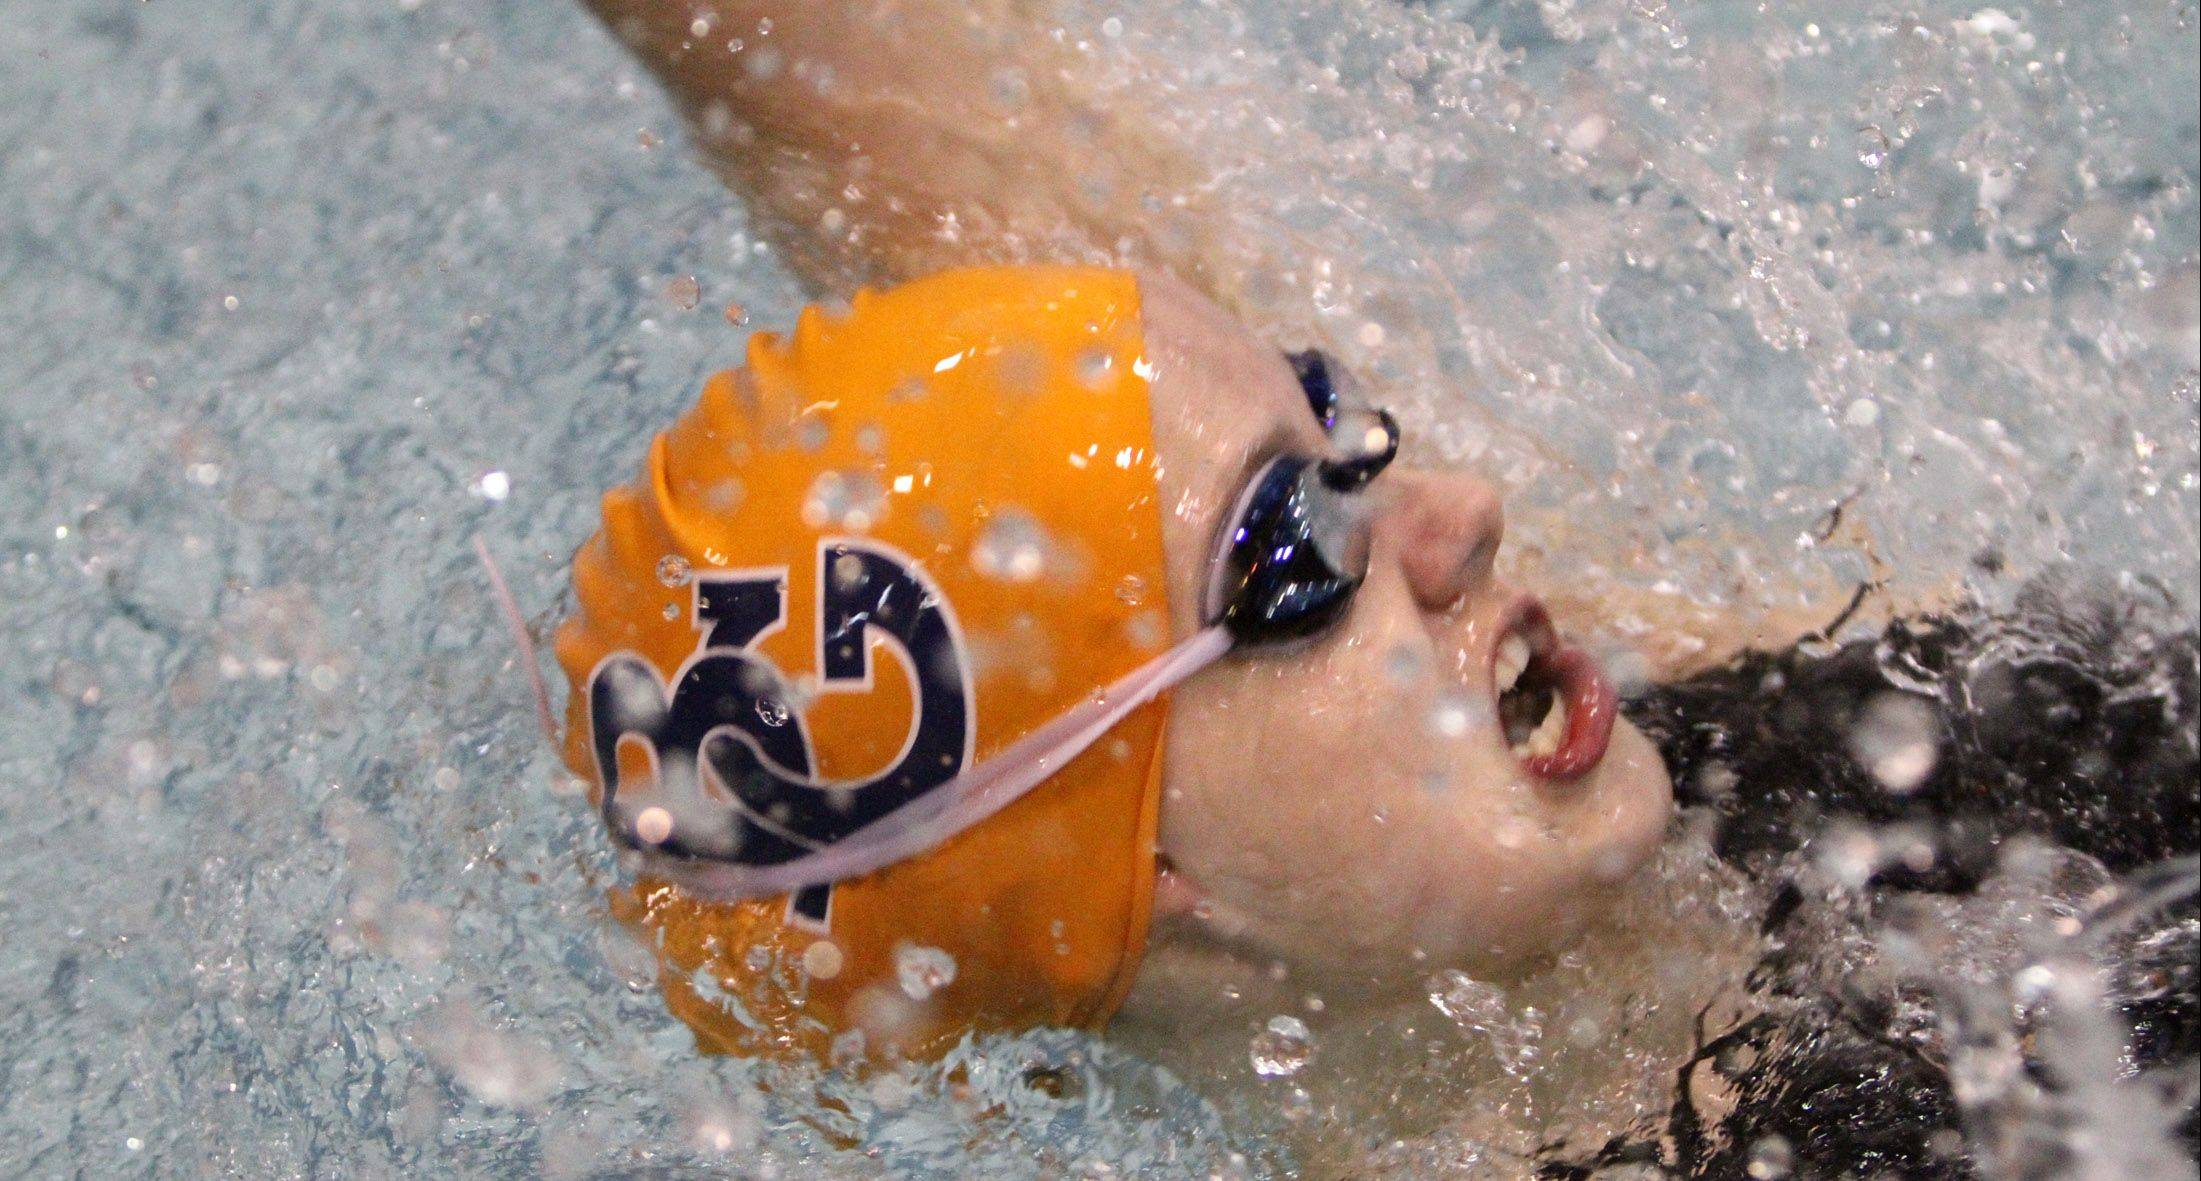 Buffalo Grove senior Veronika Jedryka competes in her final Mid-Suburban League meet today at Barrington. She's seeded second in the 100-yard freestyle and third in the 50 free; the meet begins at 11 a.m.